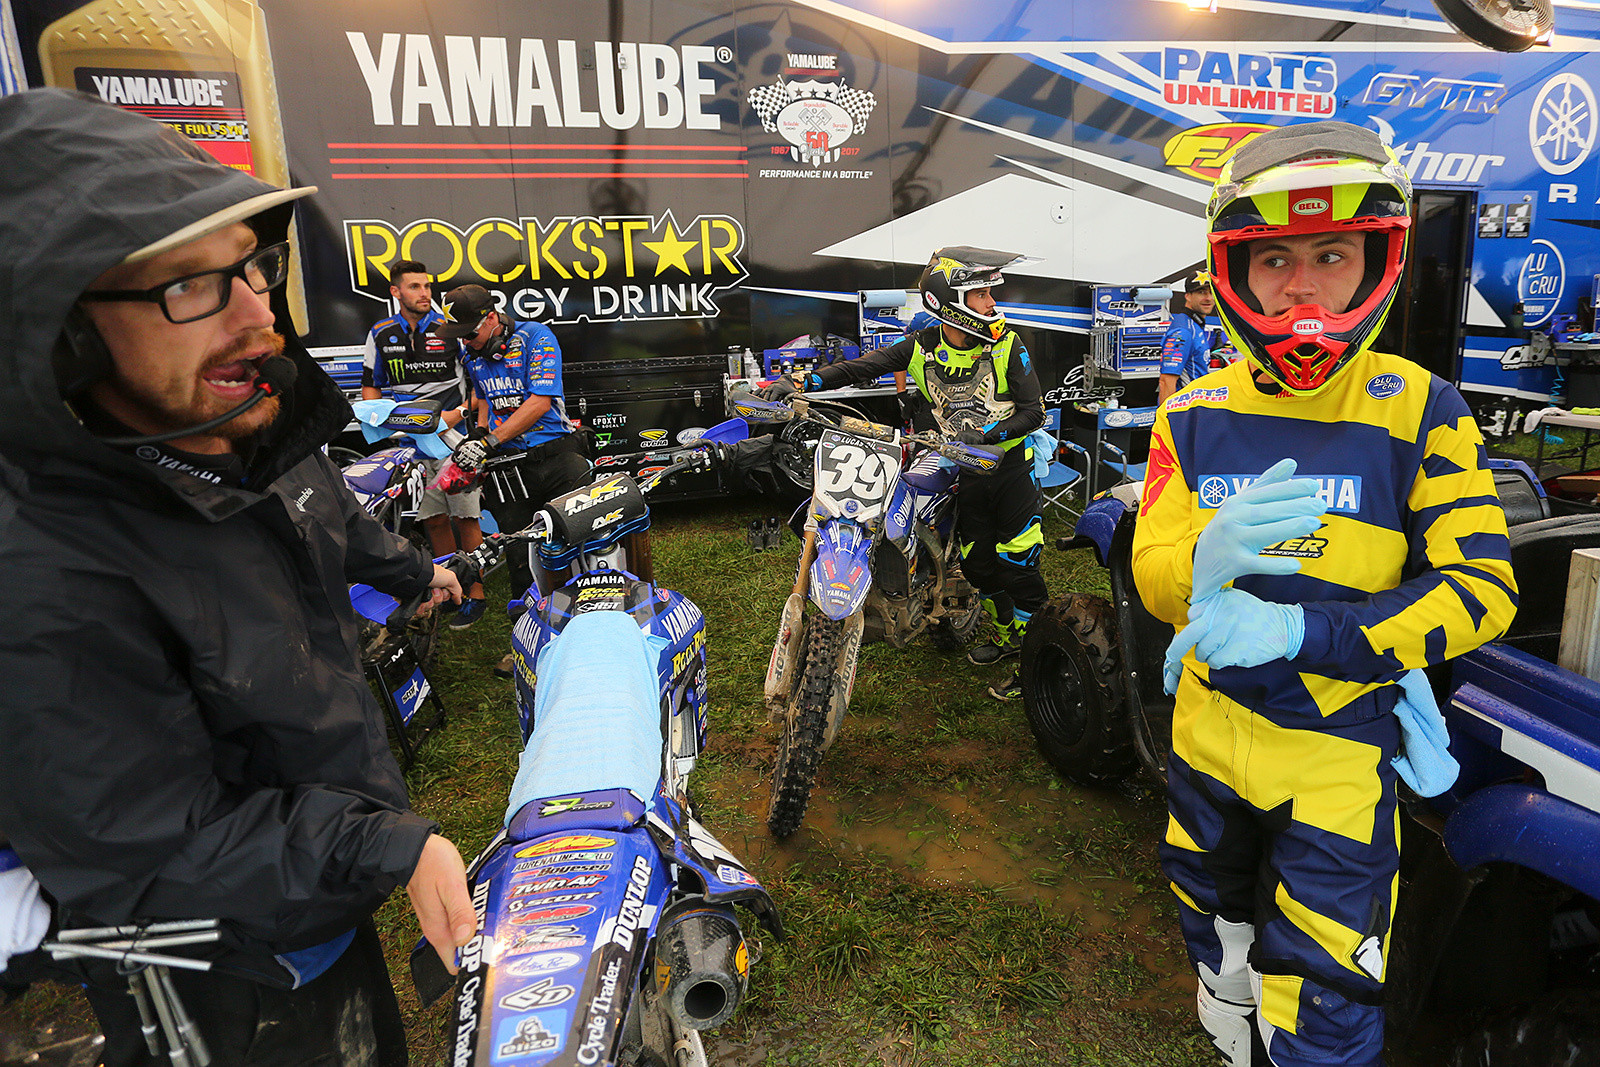 If it's Unadilla, bring on the recent grads from Loretta's. Justin Cooper (right) sure turned a lot of heads with his great start and second-place finish in the second 250 moto.